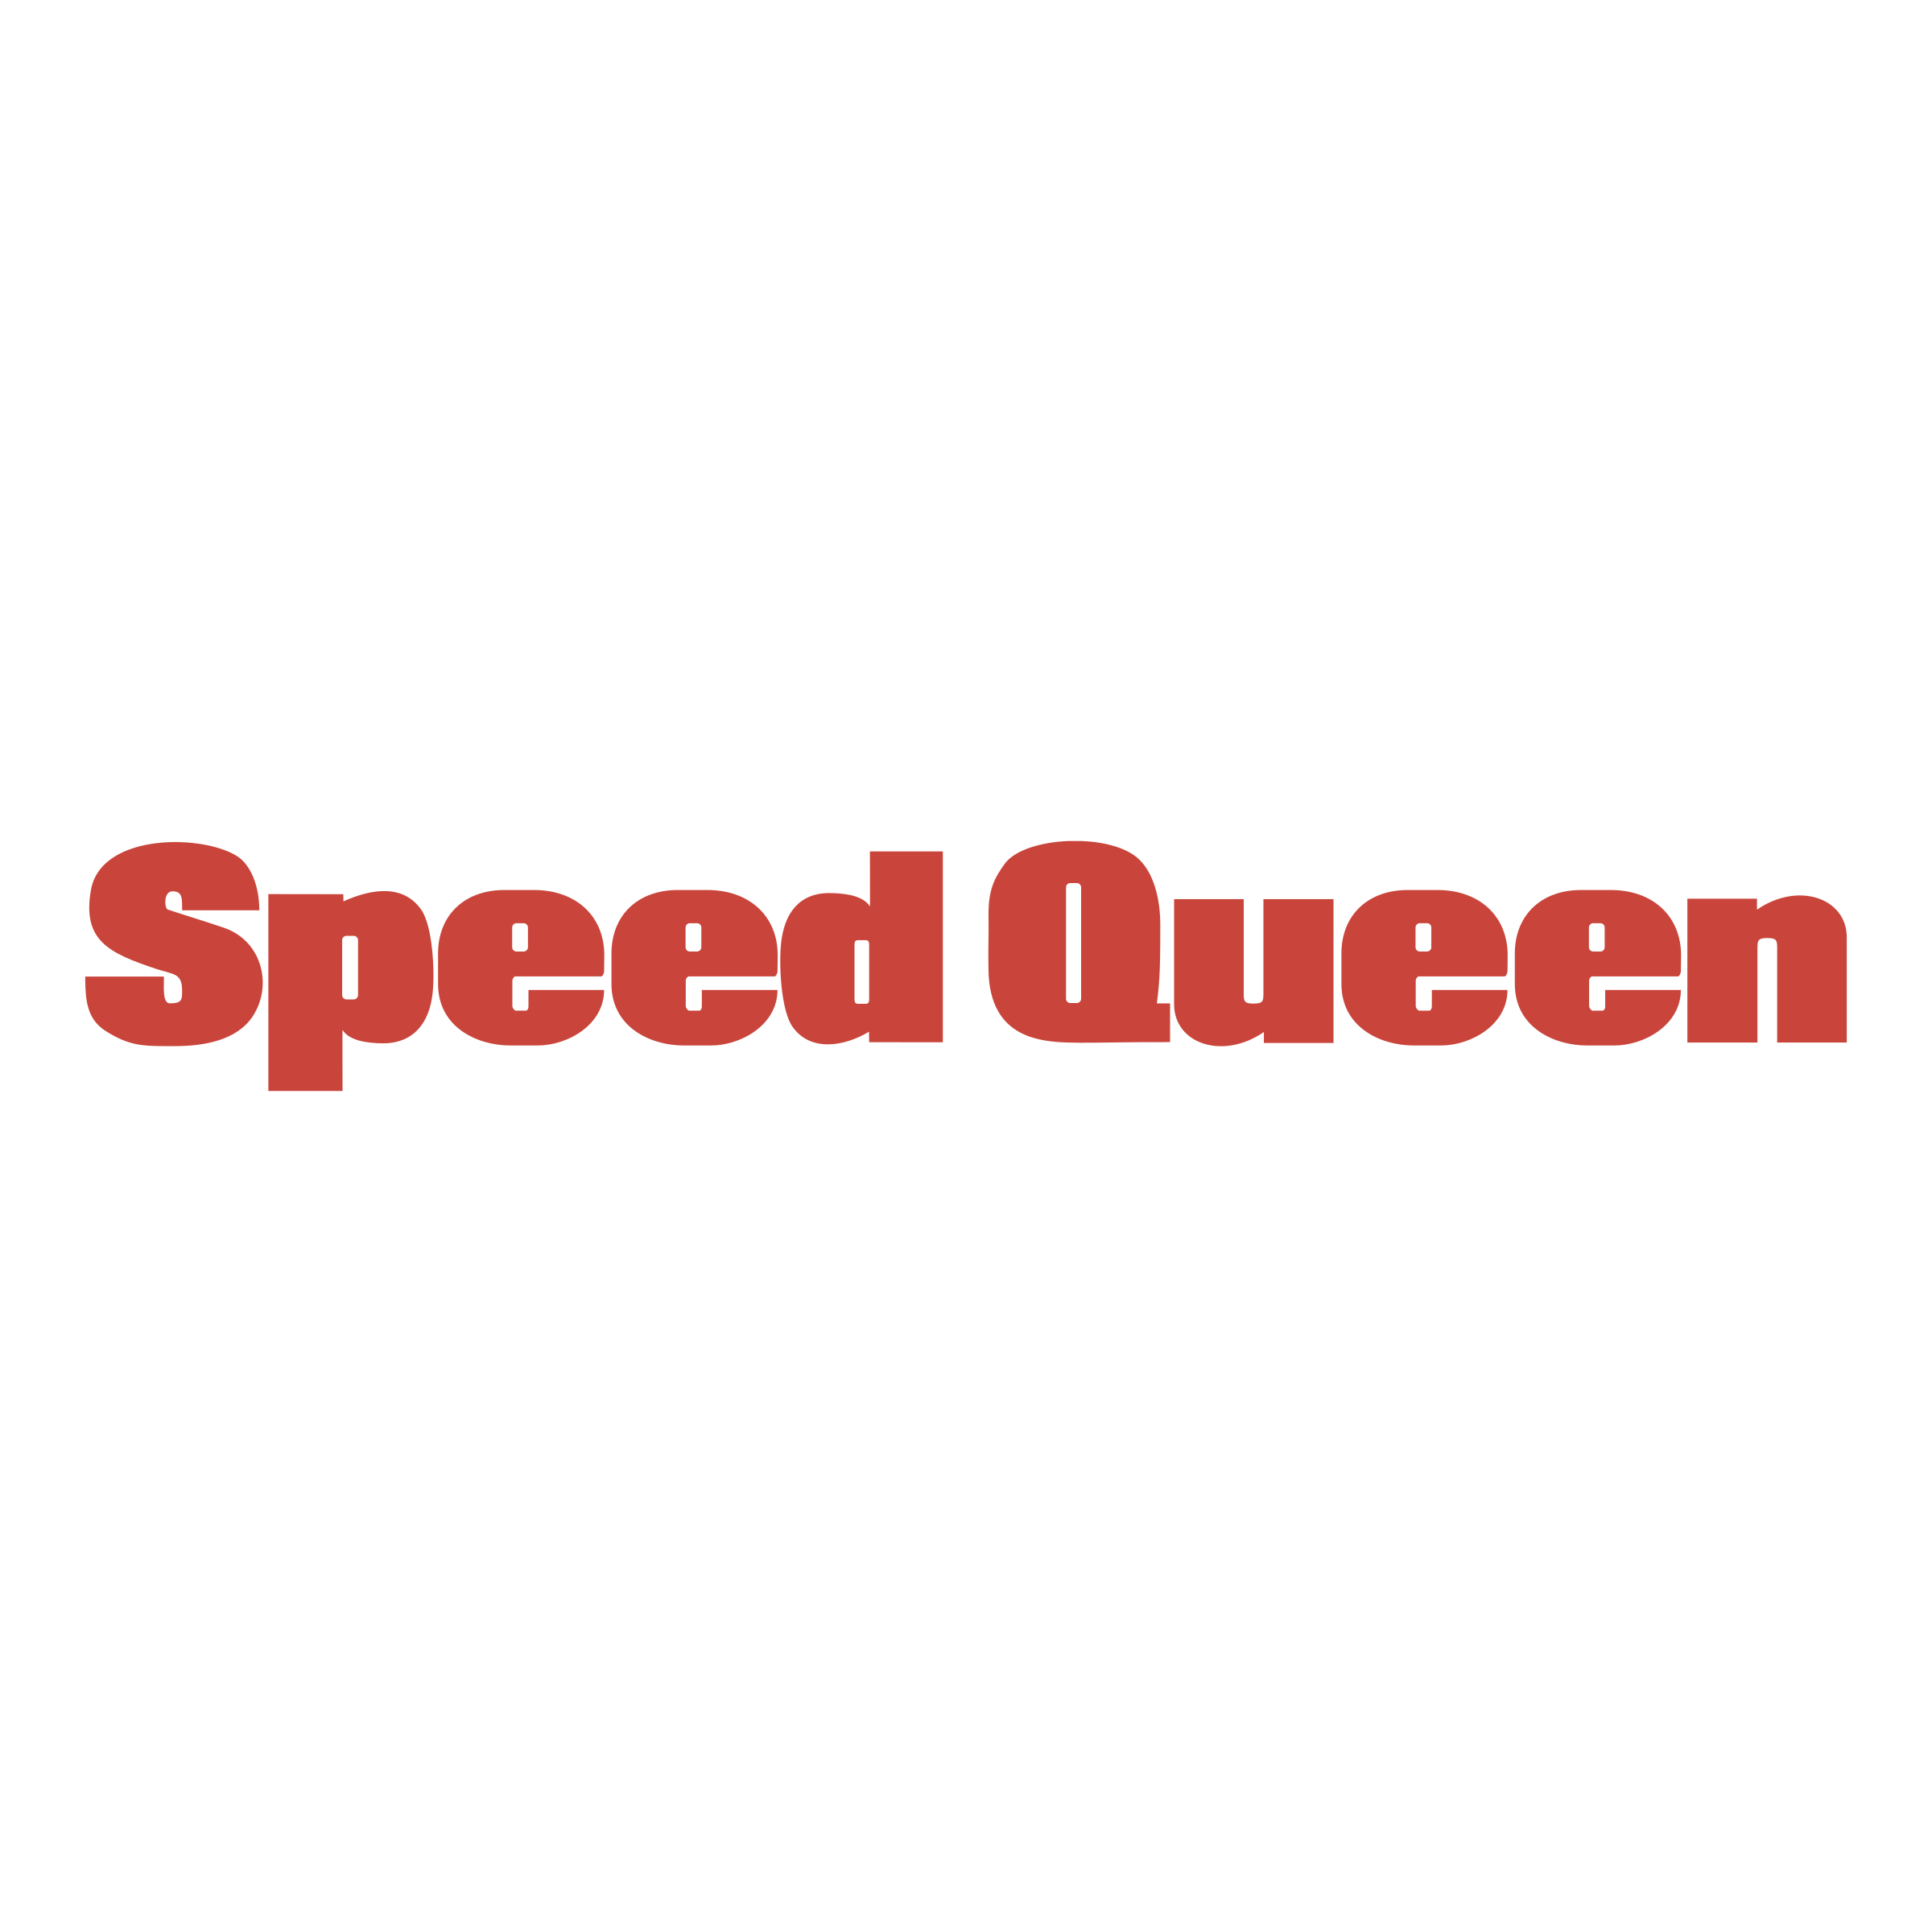 speed-queen-logo-png-transparent.png